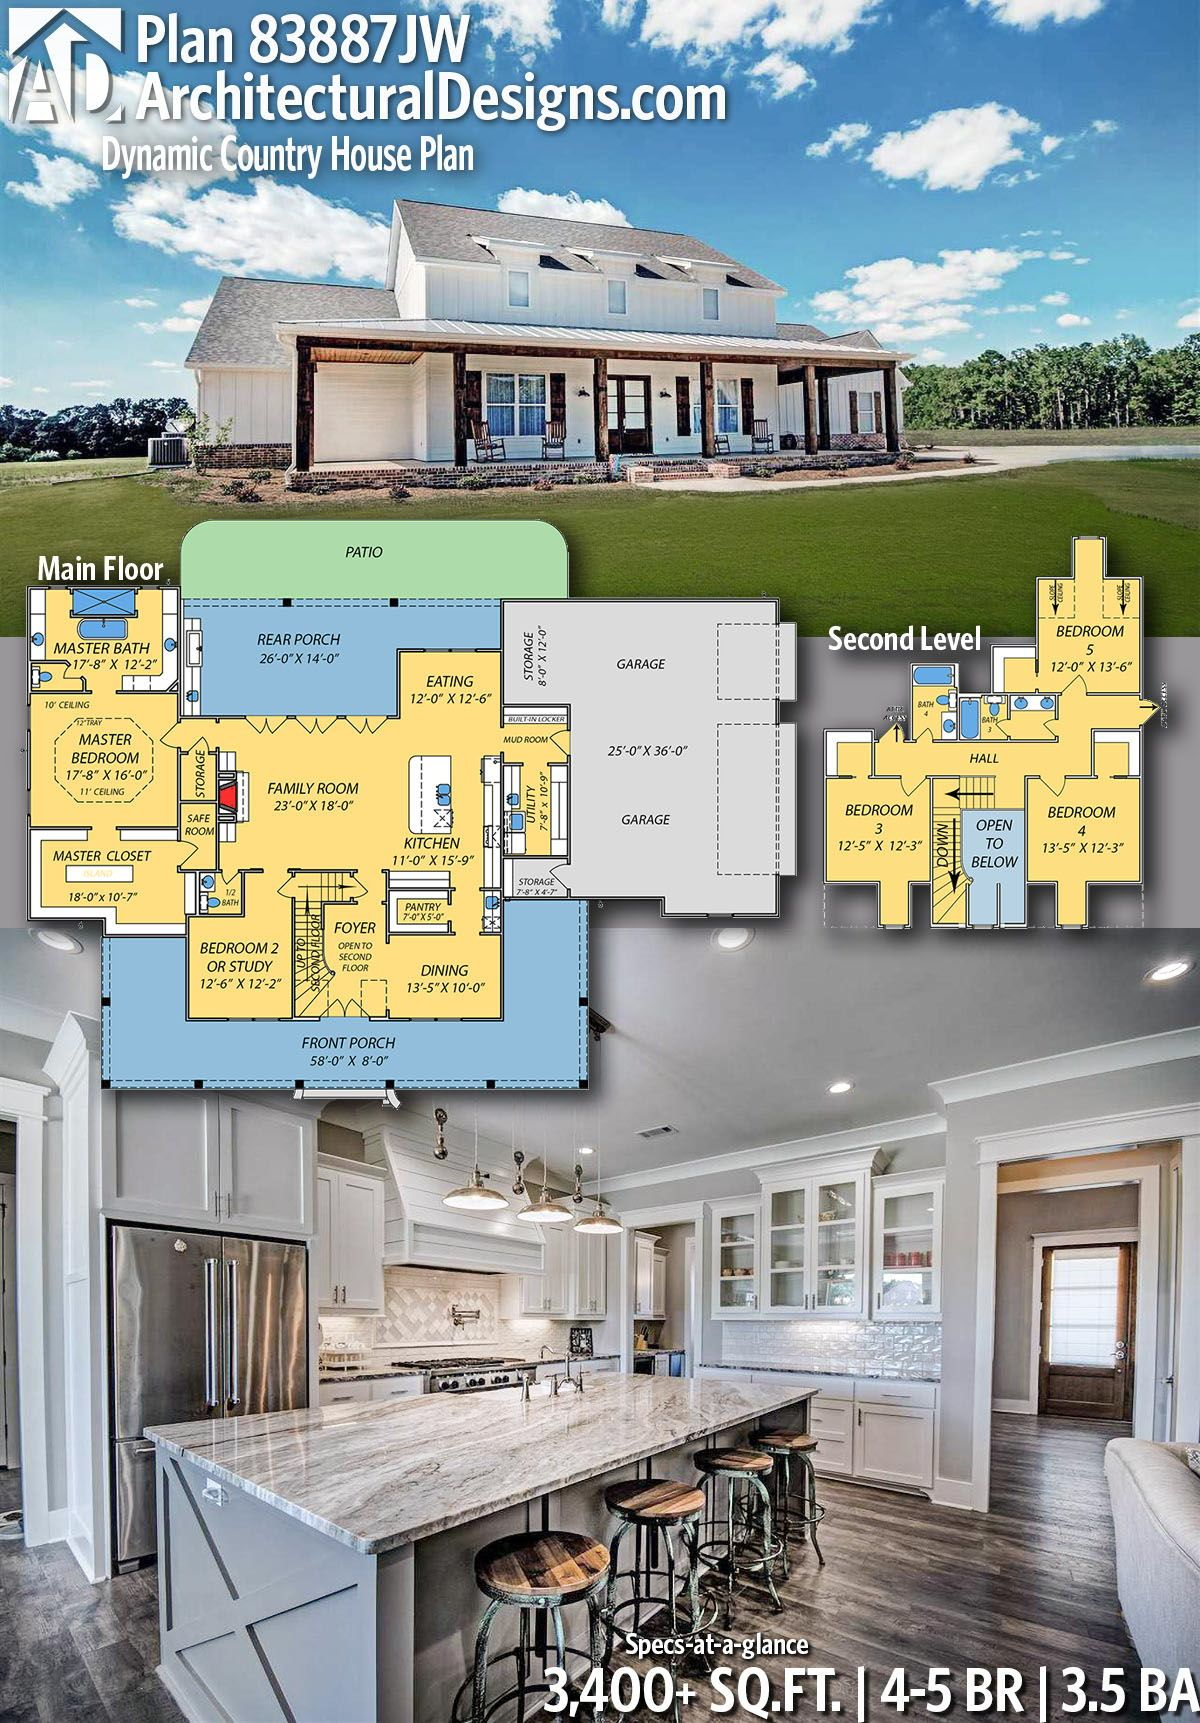 Safe Room Design: Plan 83887JW: Dynamic Country House Plan With Safe Room In